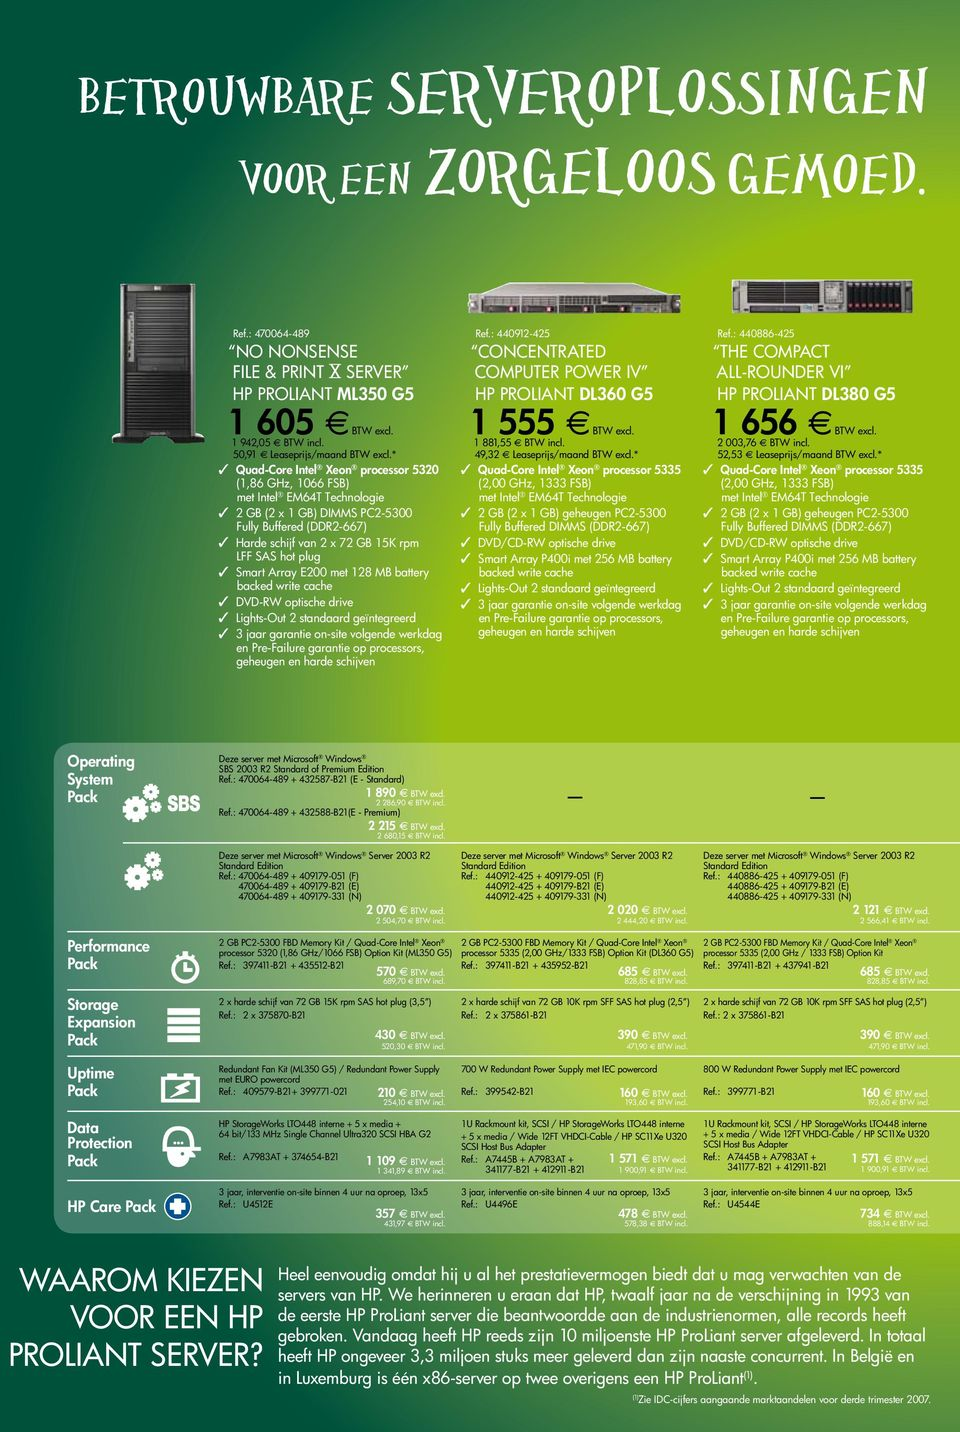 Smart Array E200 met 128 MB battery backed write cache DVD-RW optische drive Lights-Out 2 standaard geïntegreerd 3 jaar garantie on-site volgende werkdag en Pre-Failure garantie op processors,